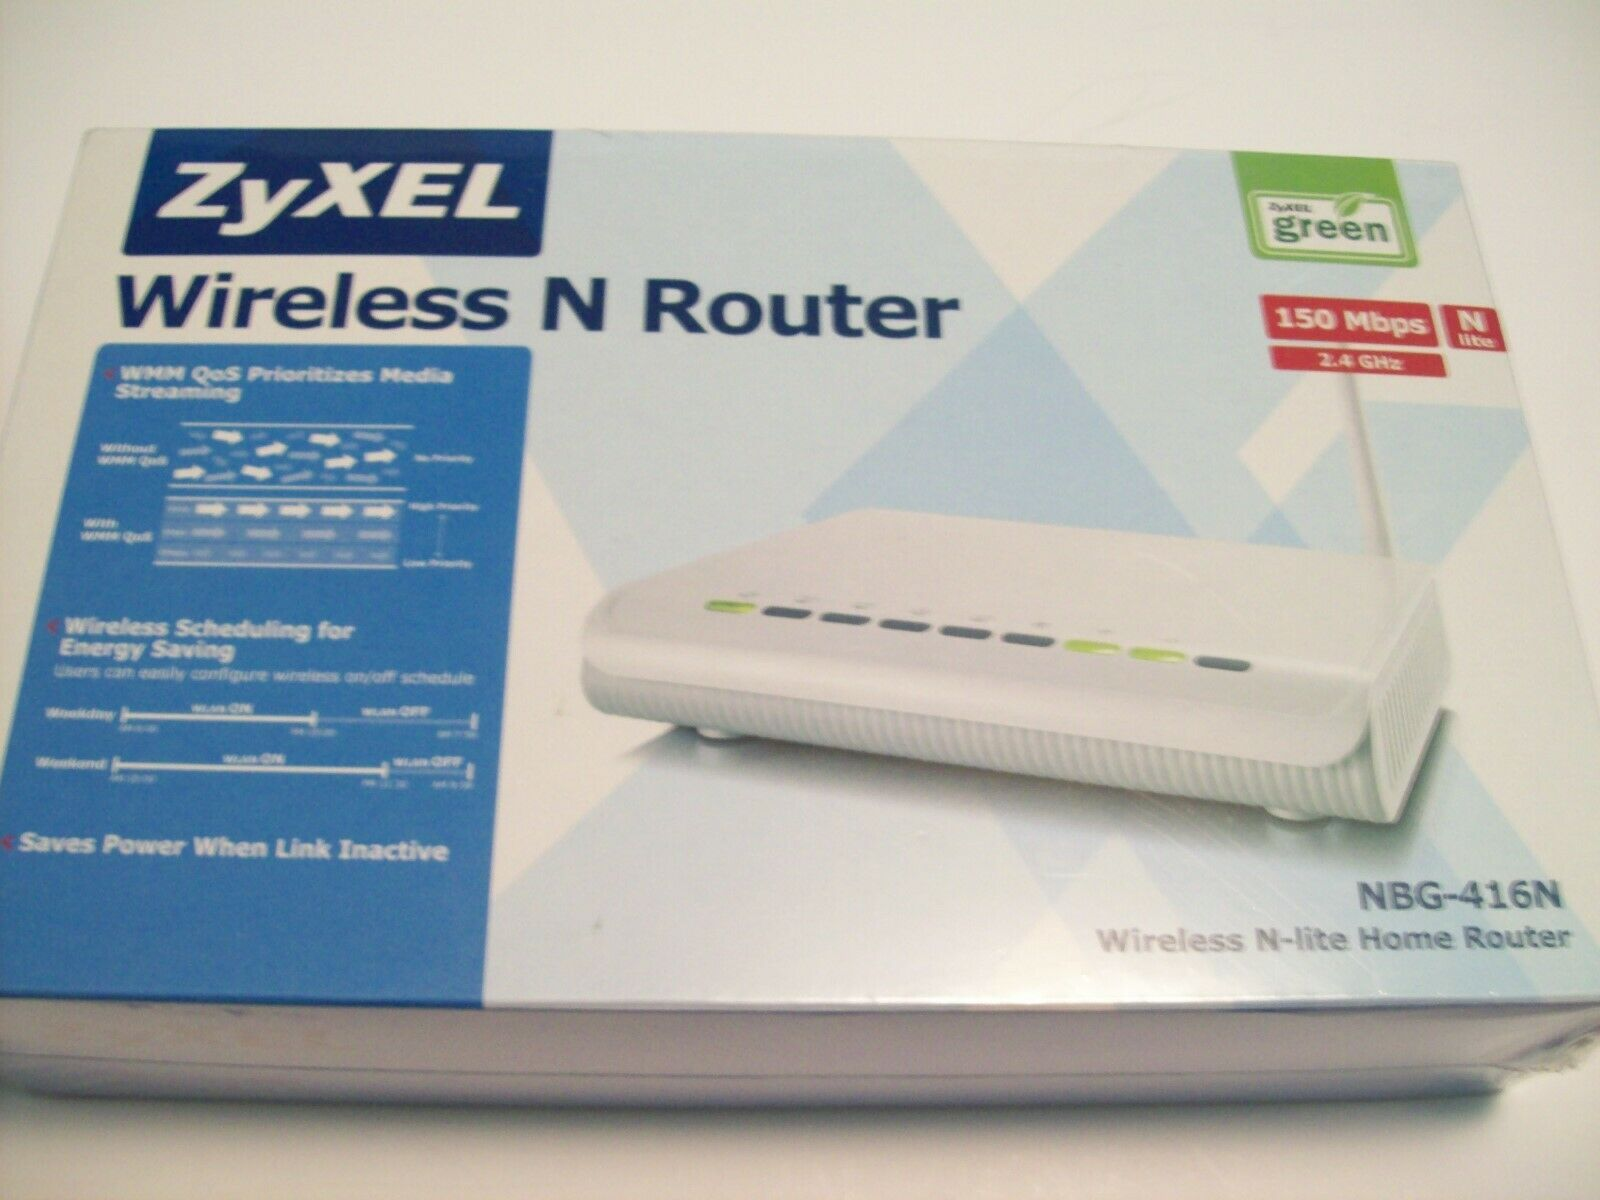 ZyXEL NBG416N 150 Mbps 4-Port 10/100 Wireless N Router